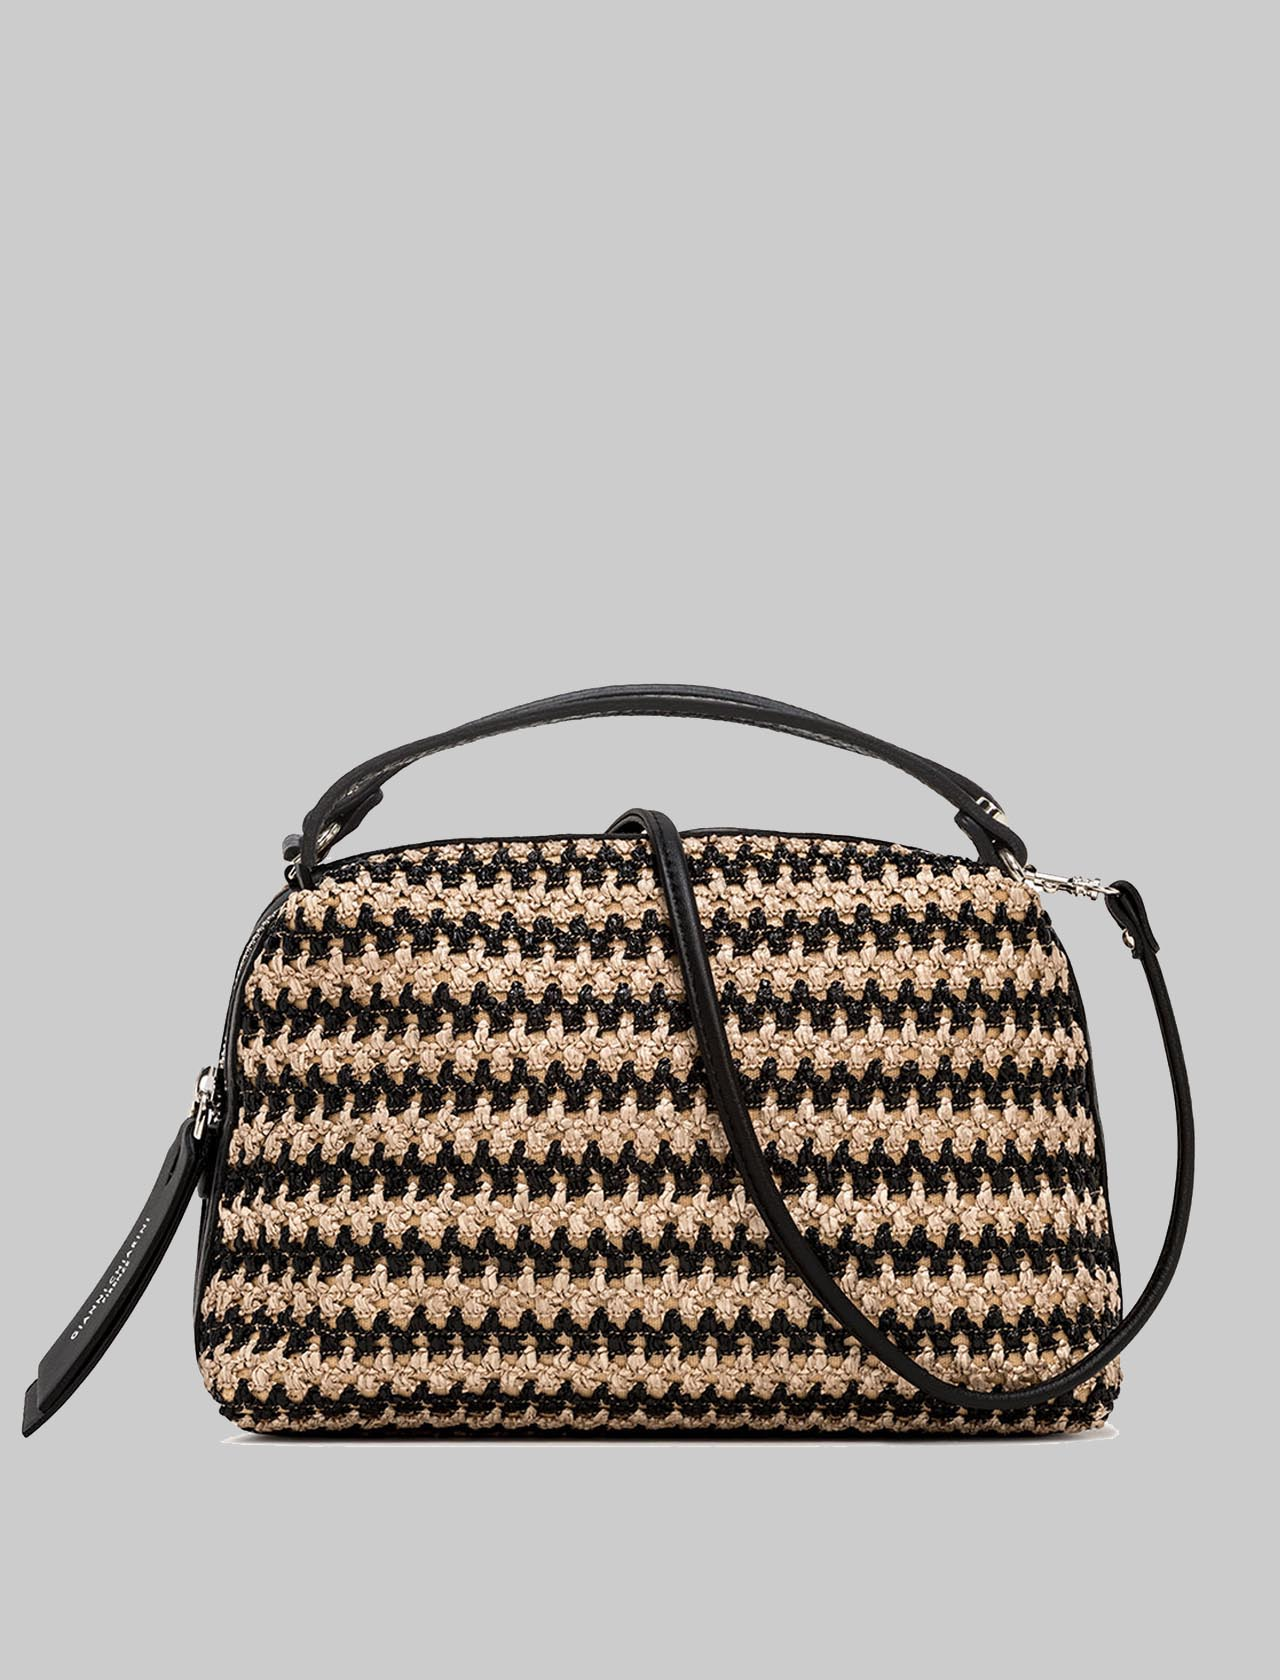 Alifa Women's Handbag In Natural And Black Woven Straw With Black Leather Inserts And Removable And Adjustable Shoulder Strap Gianni Chiarini | Bags and backpacks | BS825811819